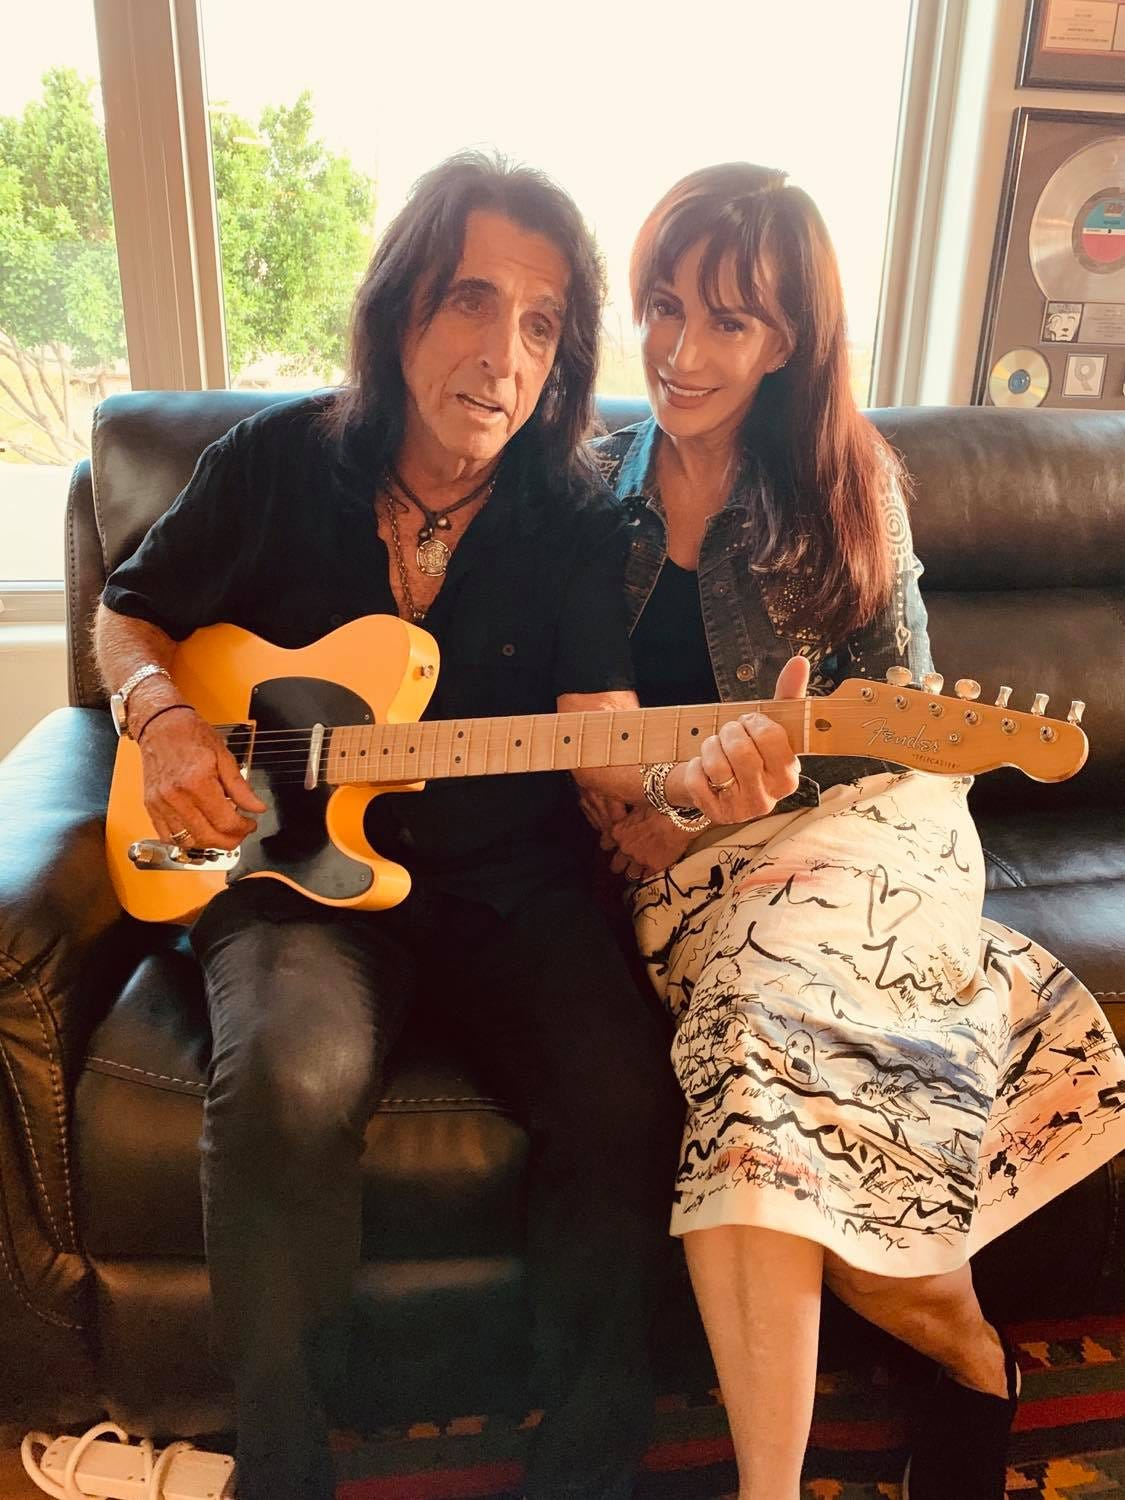 Catching up with Alice Cooper, who s home with family in Arizona after postponing his tour